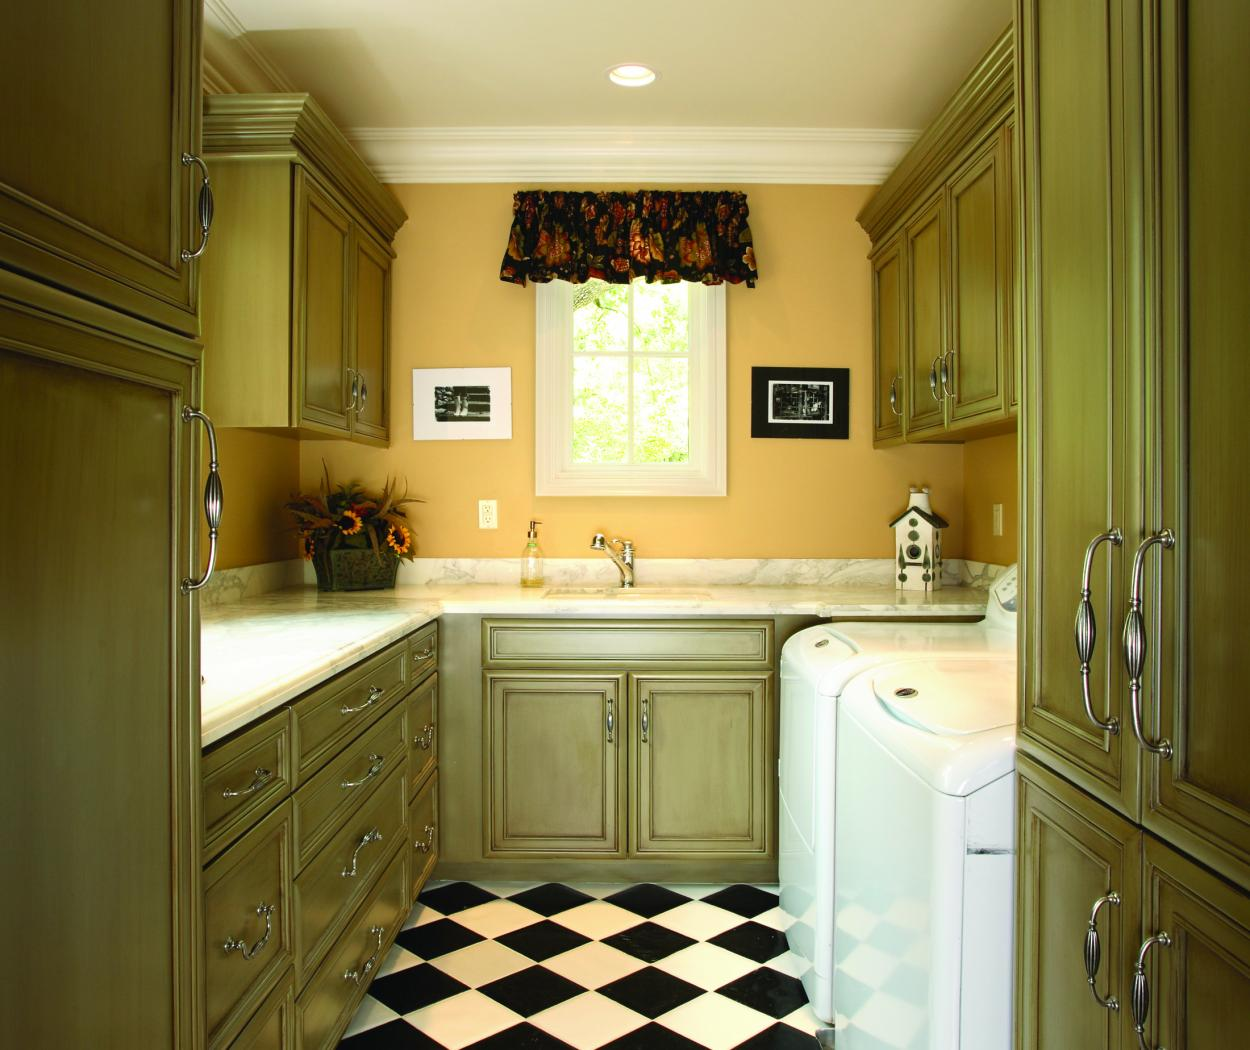 Transitional Green Laundry Room Cabinets with a Beautiful Marble Countertop, Decorative Hardware and Checkered Floors